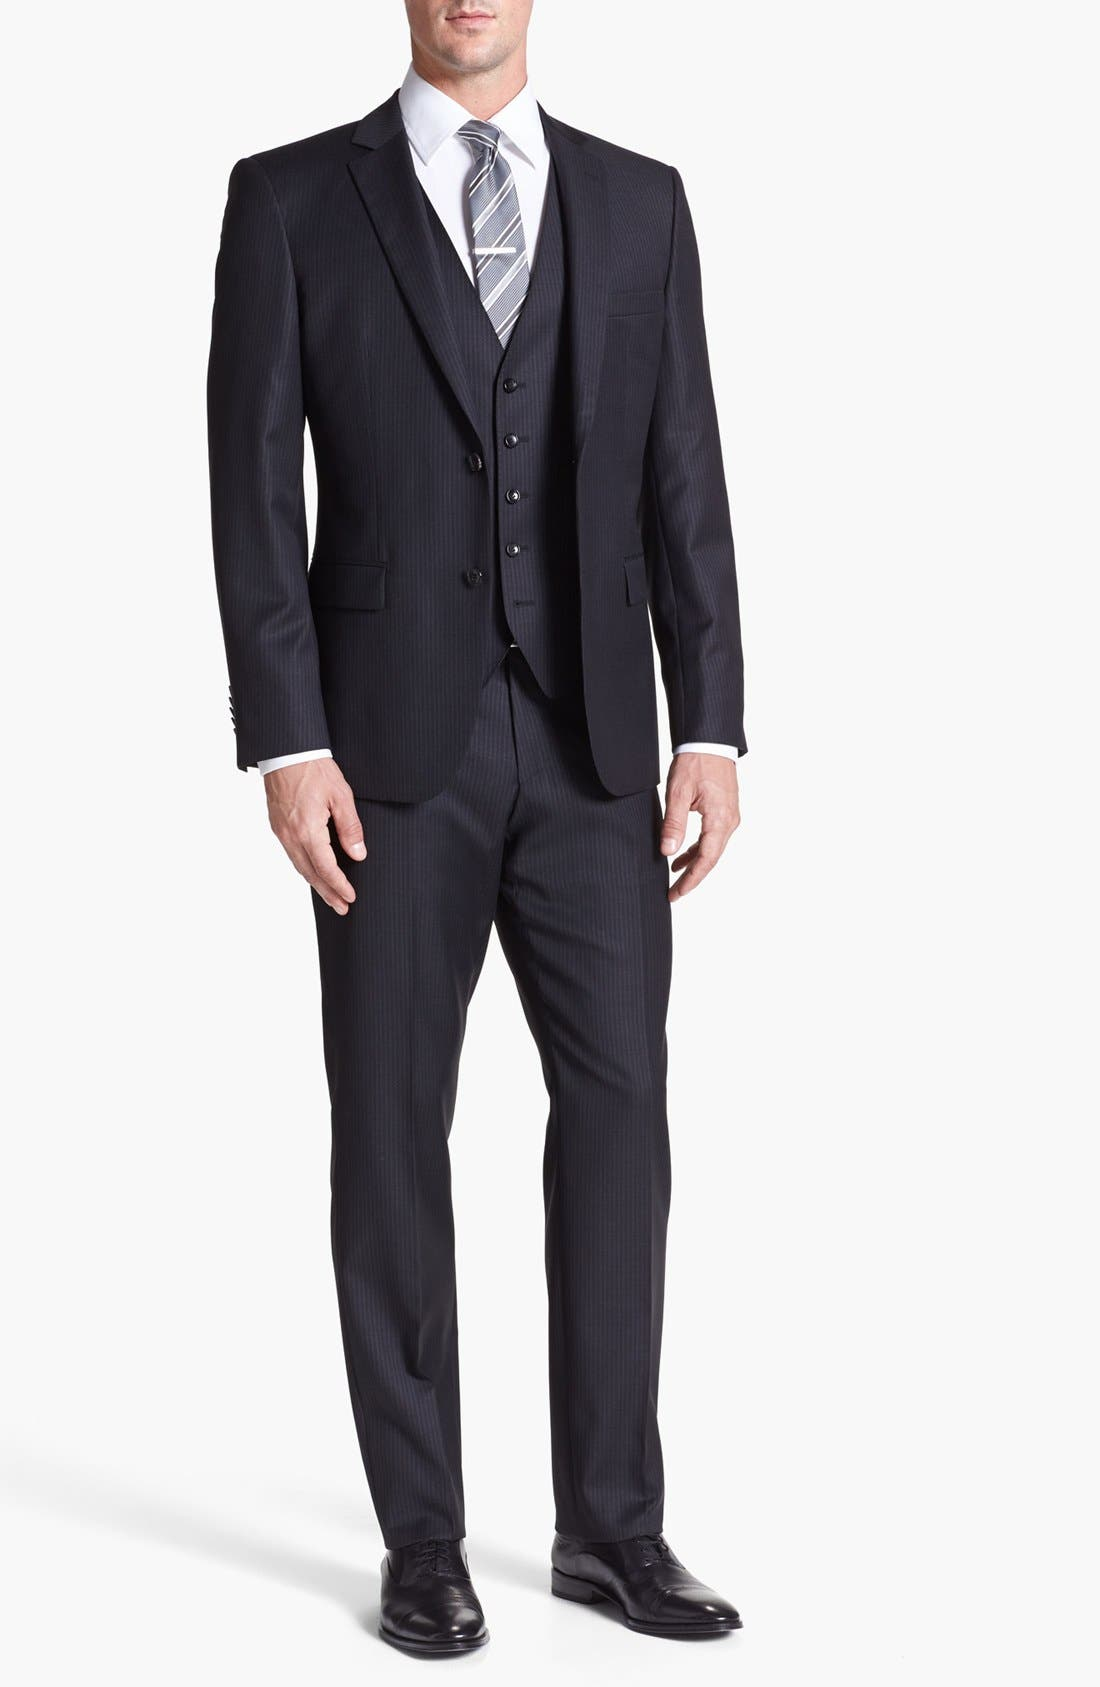 Main Image - BOSS HUGO BOSS 'Howard/Court' Trim Fit Three Piece Suit